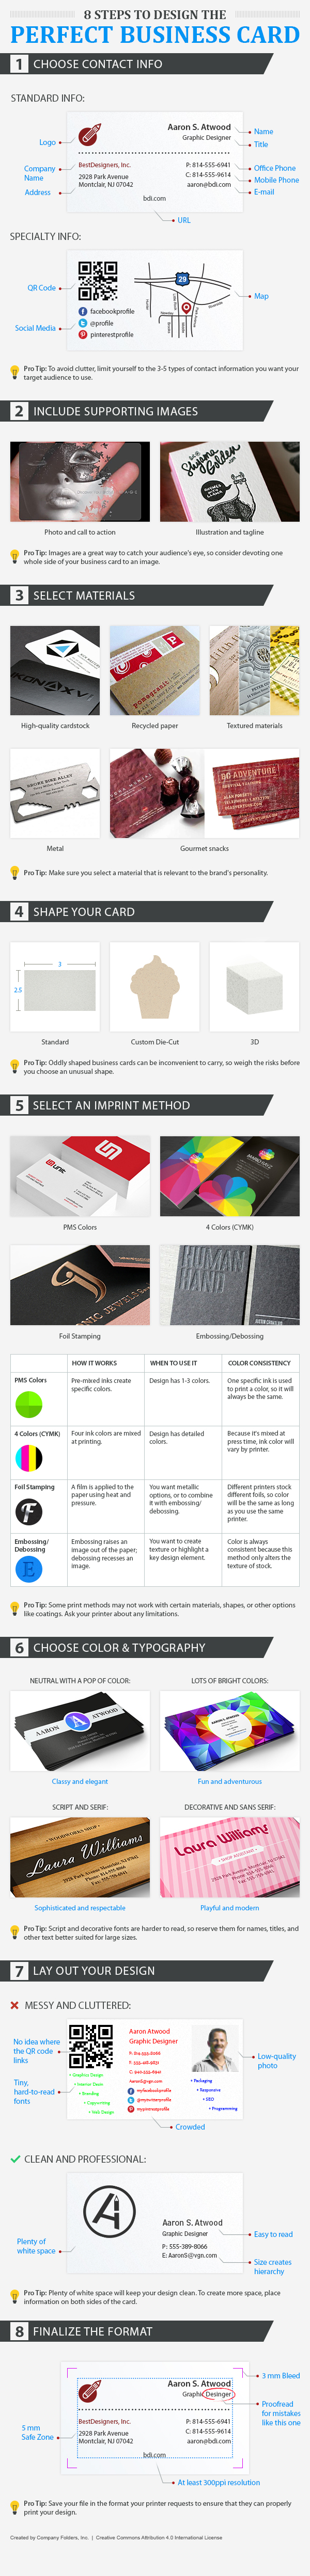 Business card design tips top ideas for designers in 2018 8 tips to design the perfect business card infographic reheart Image collections